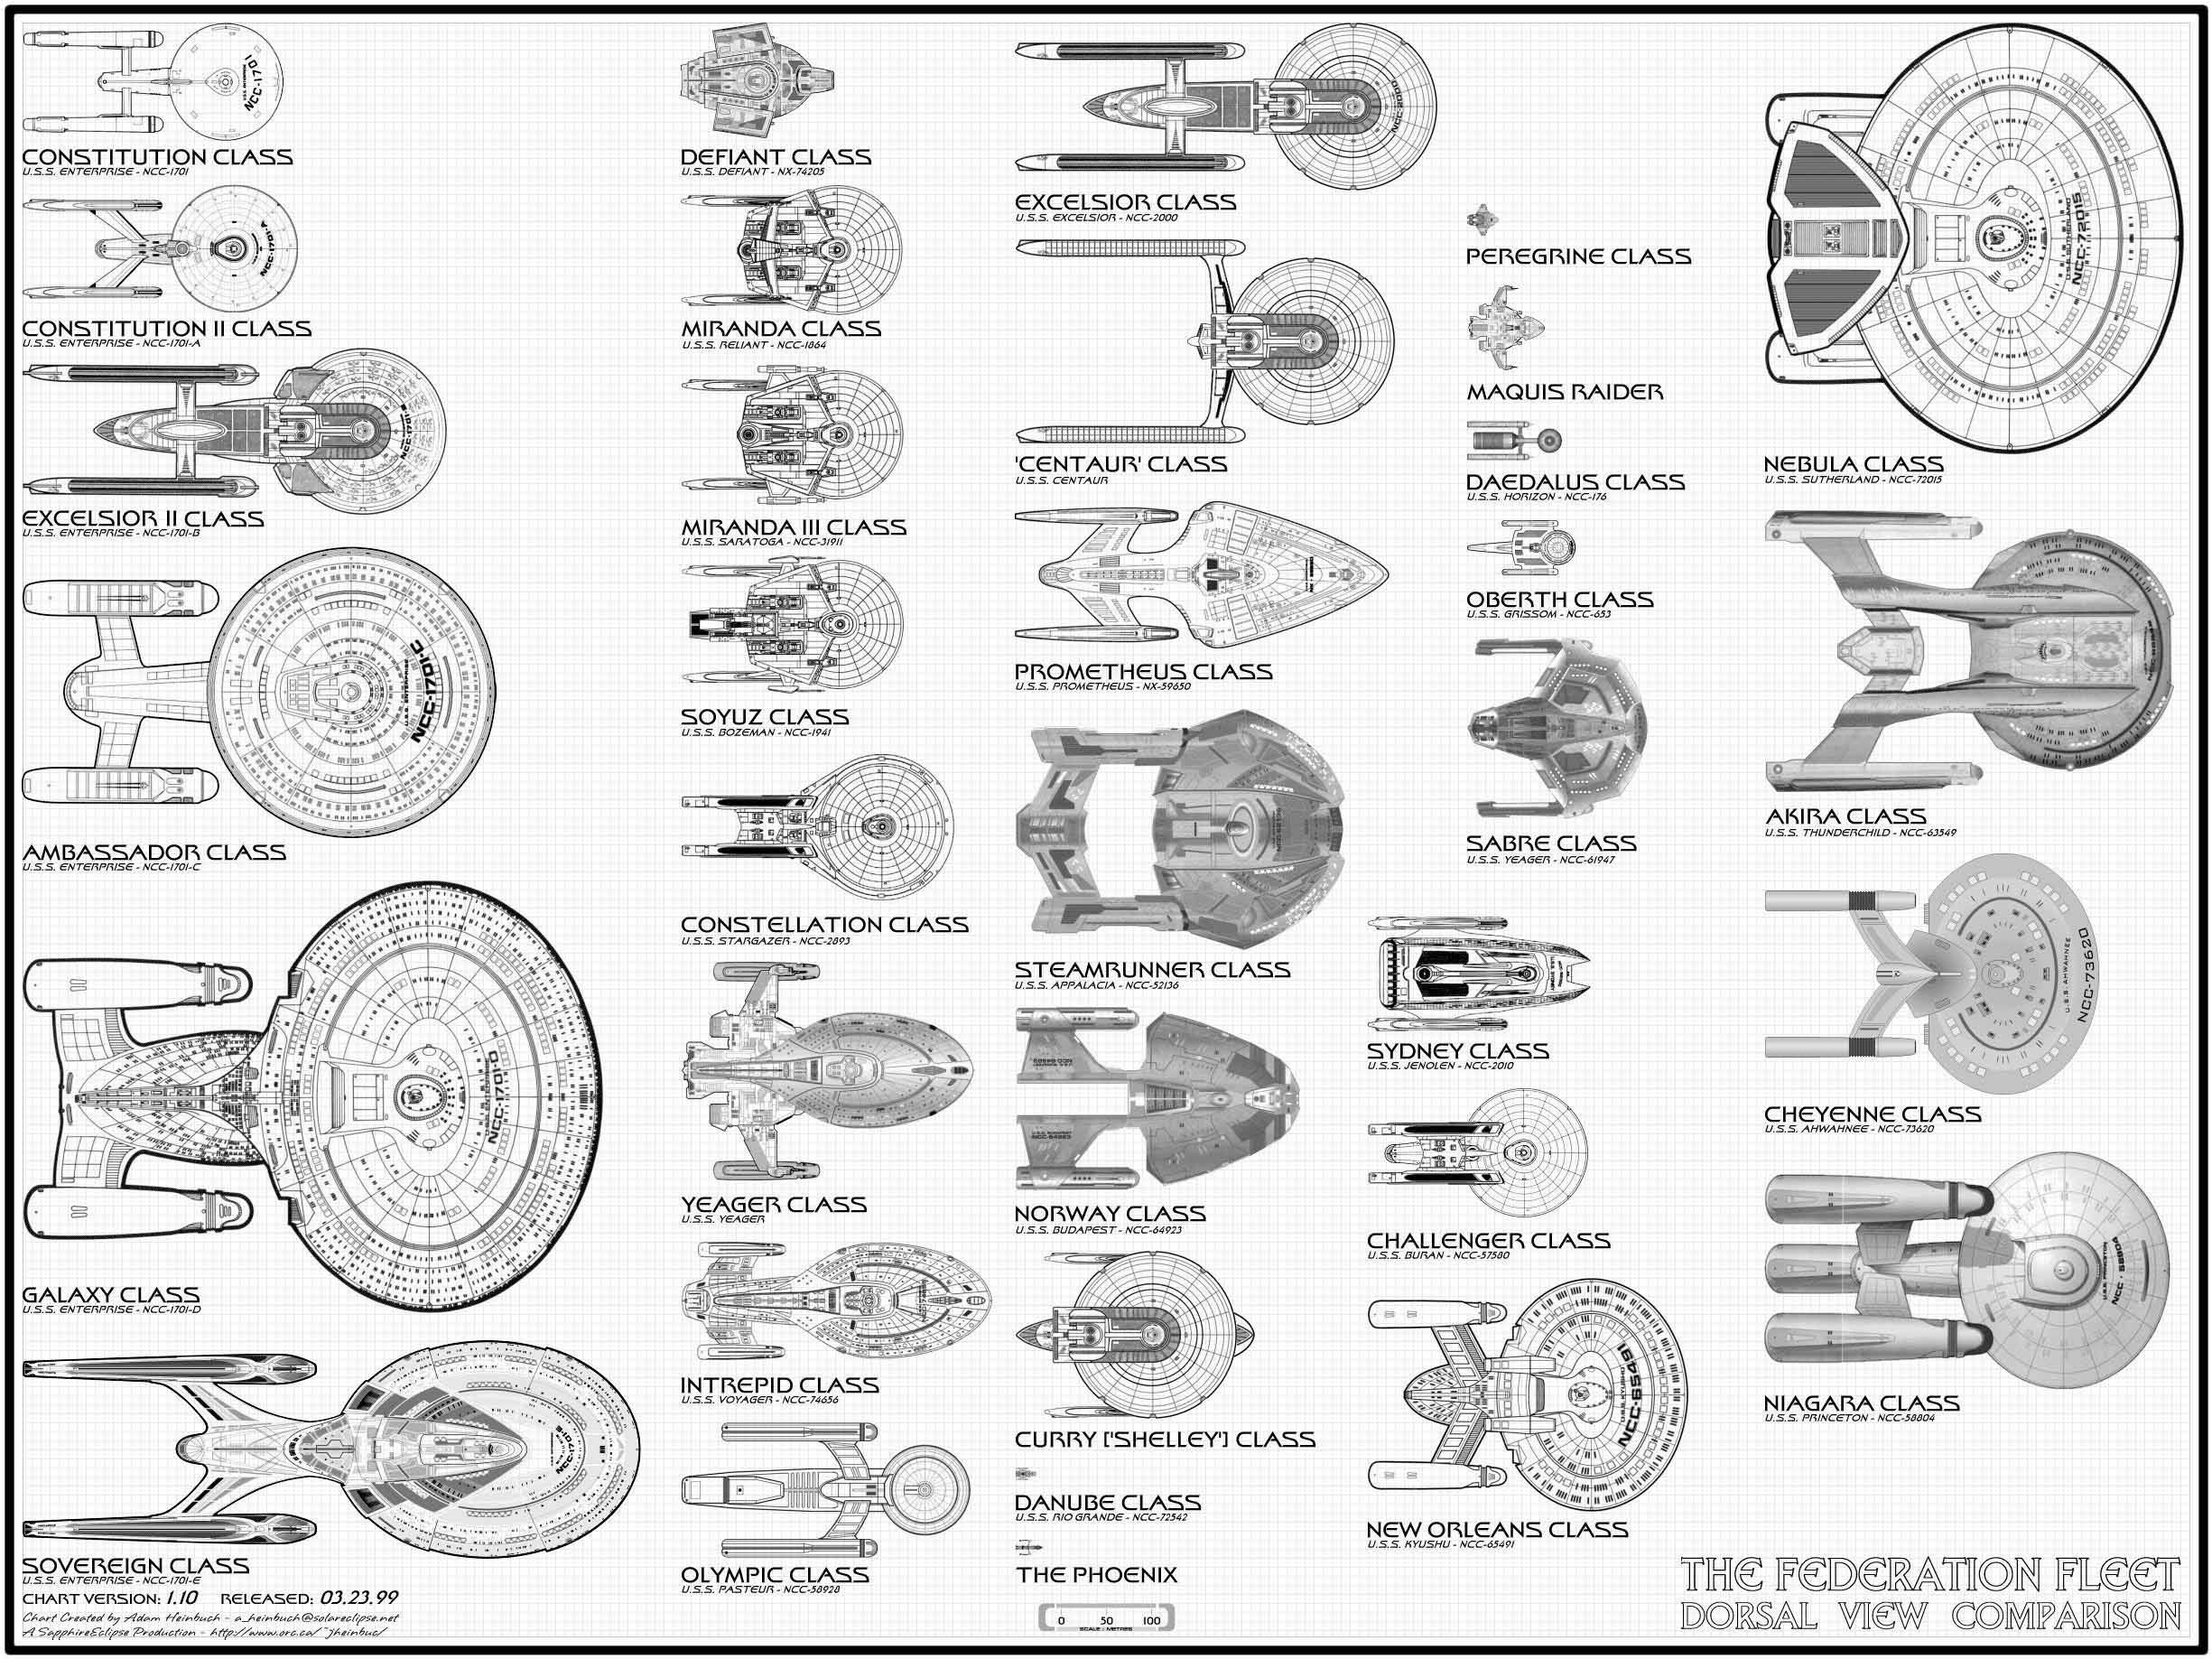 Star Trek: Federation Fleet Starships Size Comparison